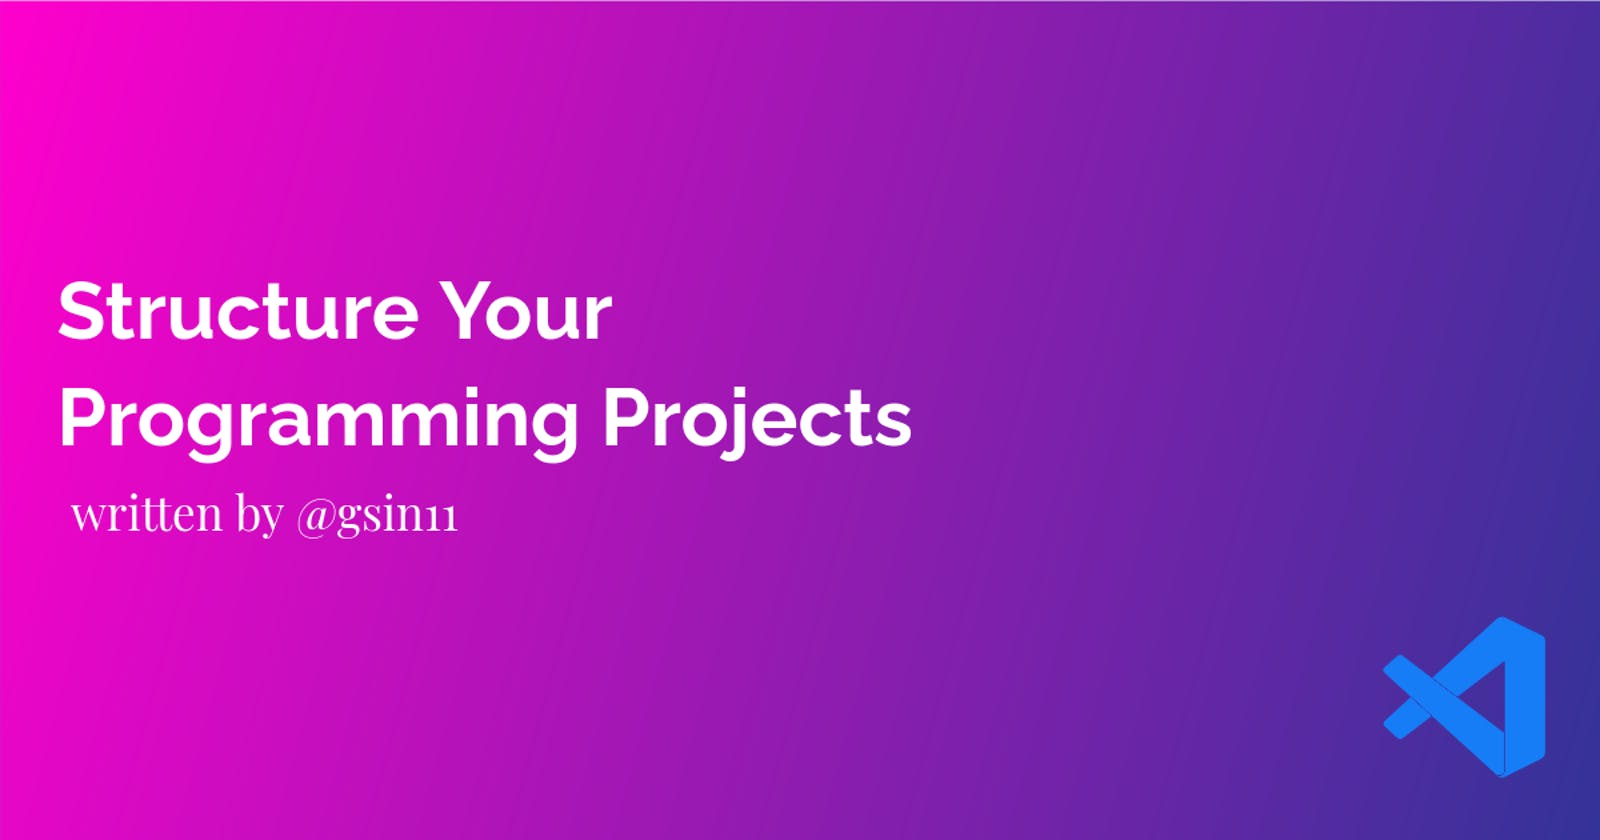 How To Structure Your Programming Projects